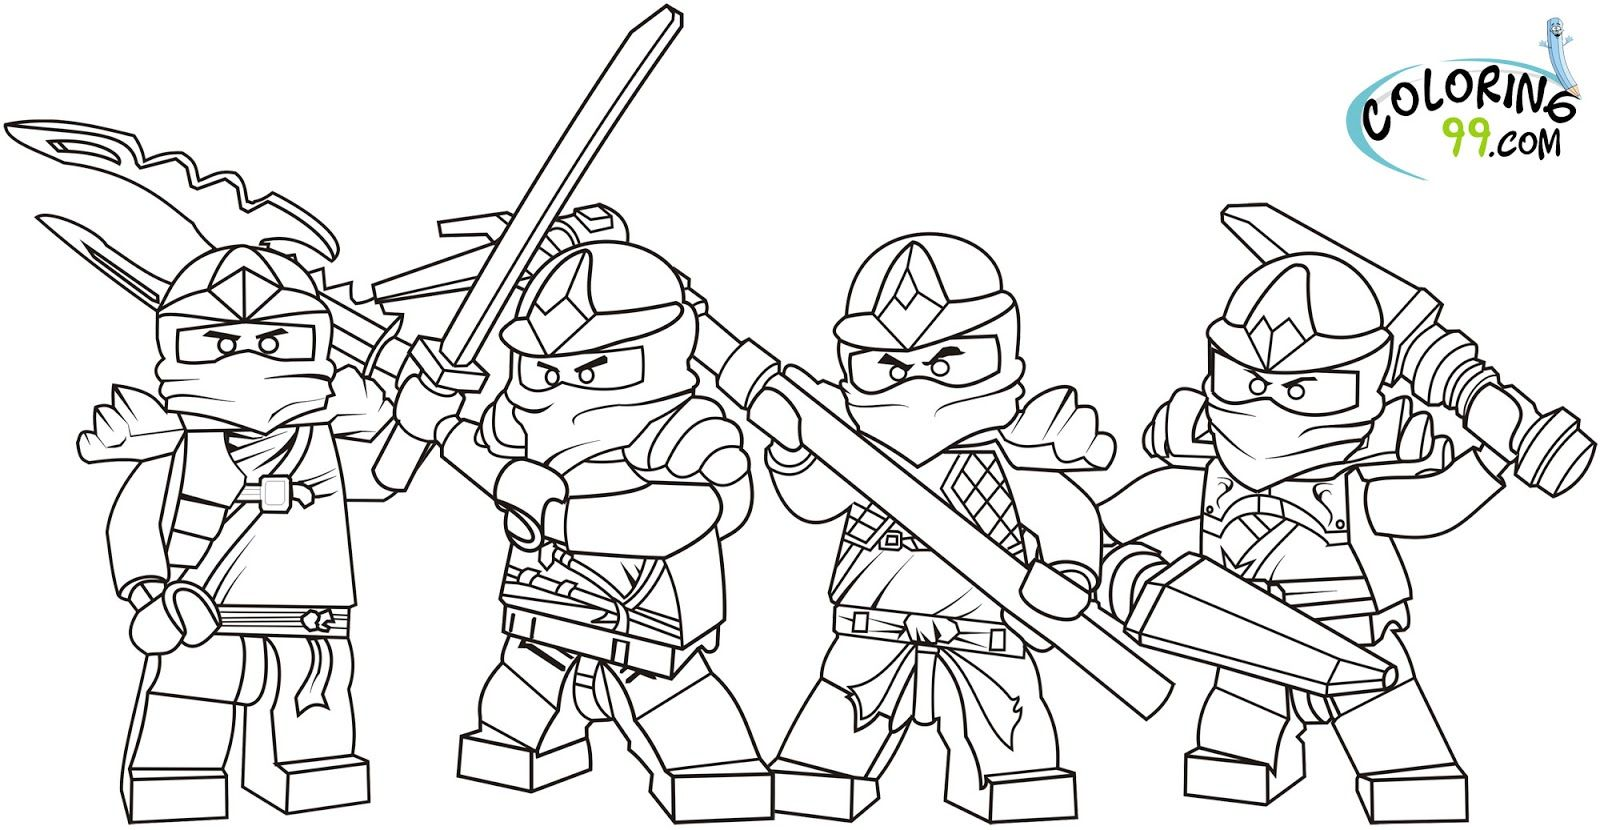 Coloring Pages Free Lego Printable Coloring Pages 1000 images about lego on pinterest coloring pages and lego